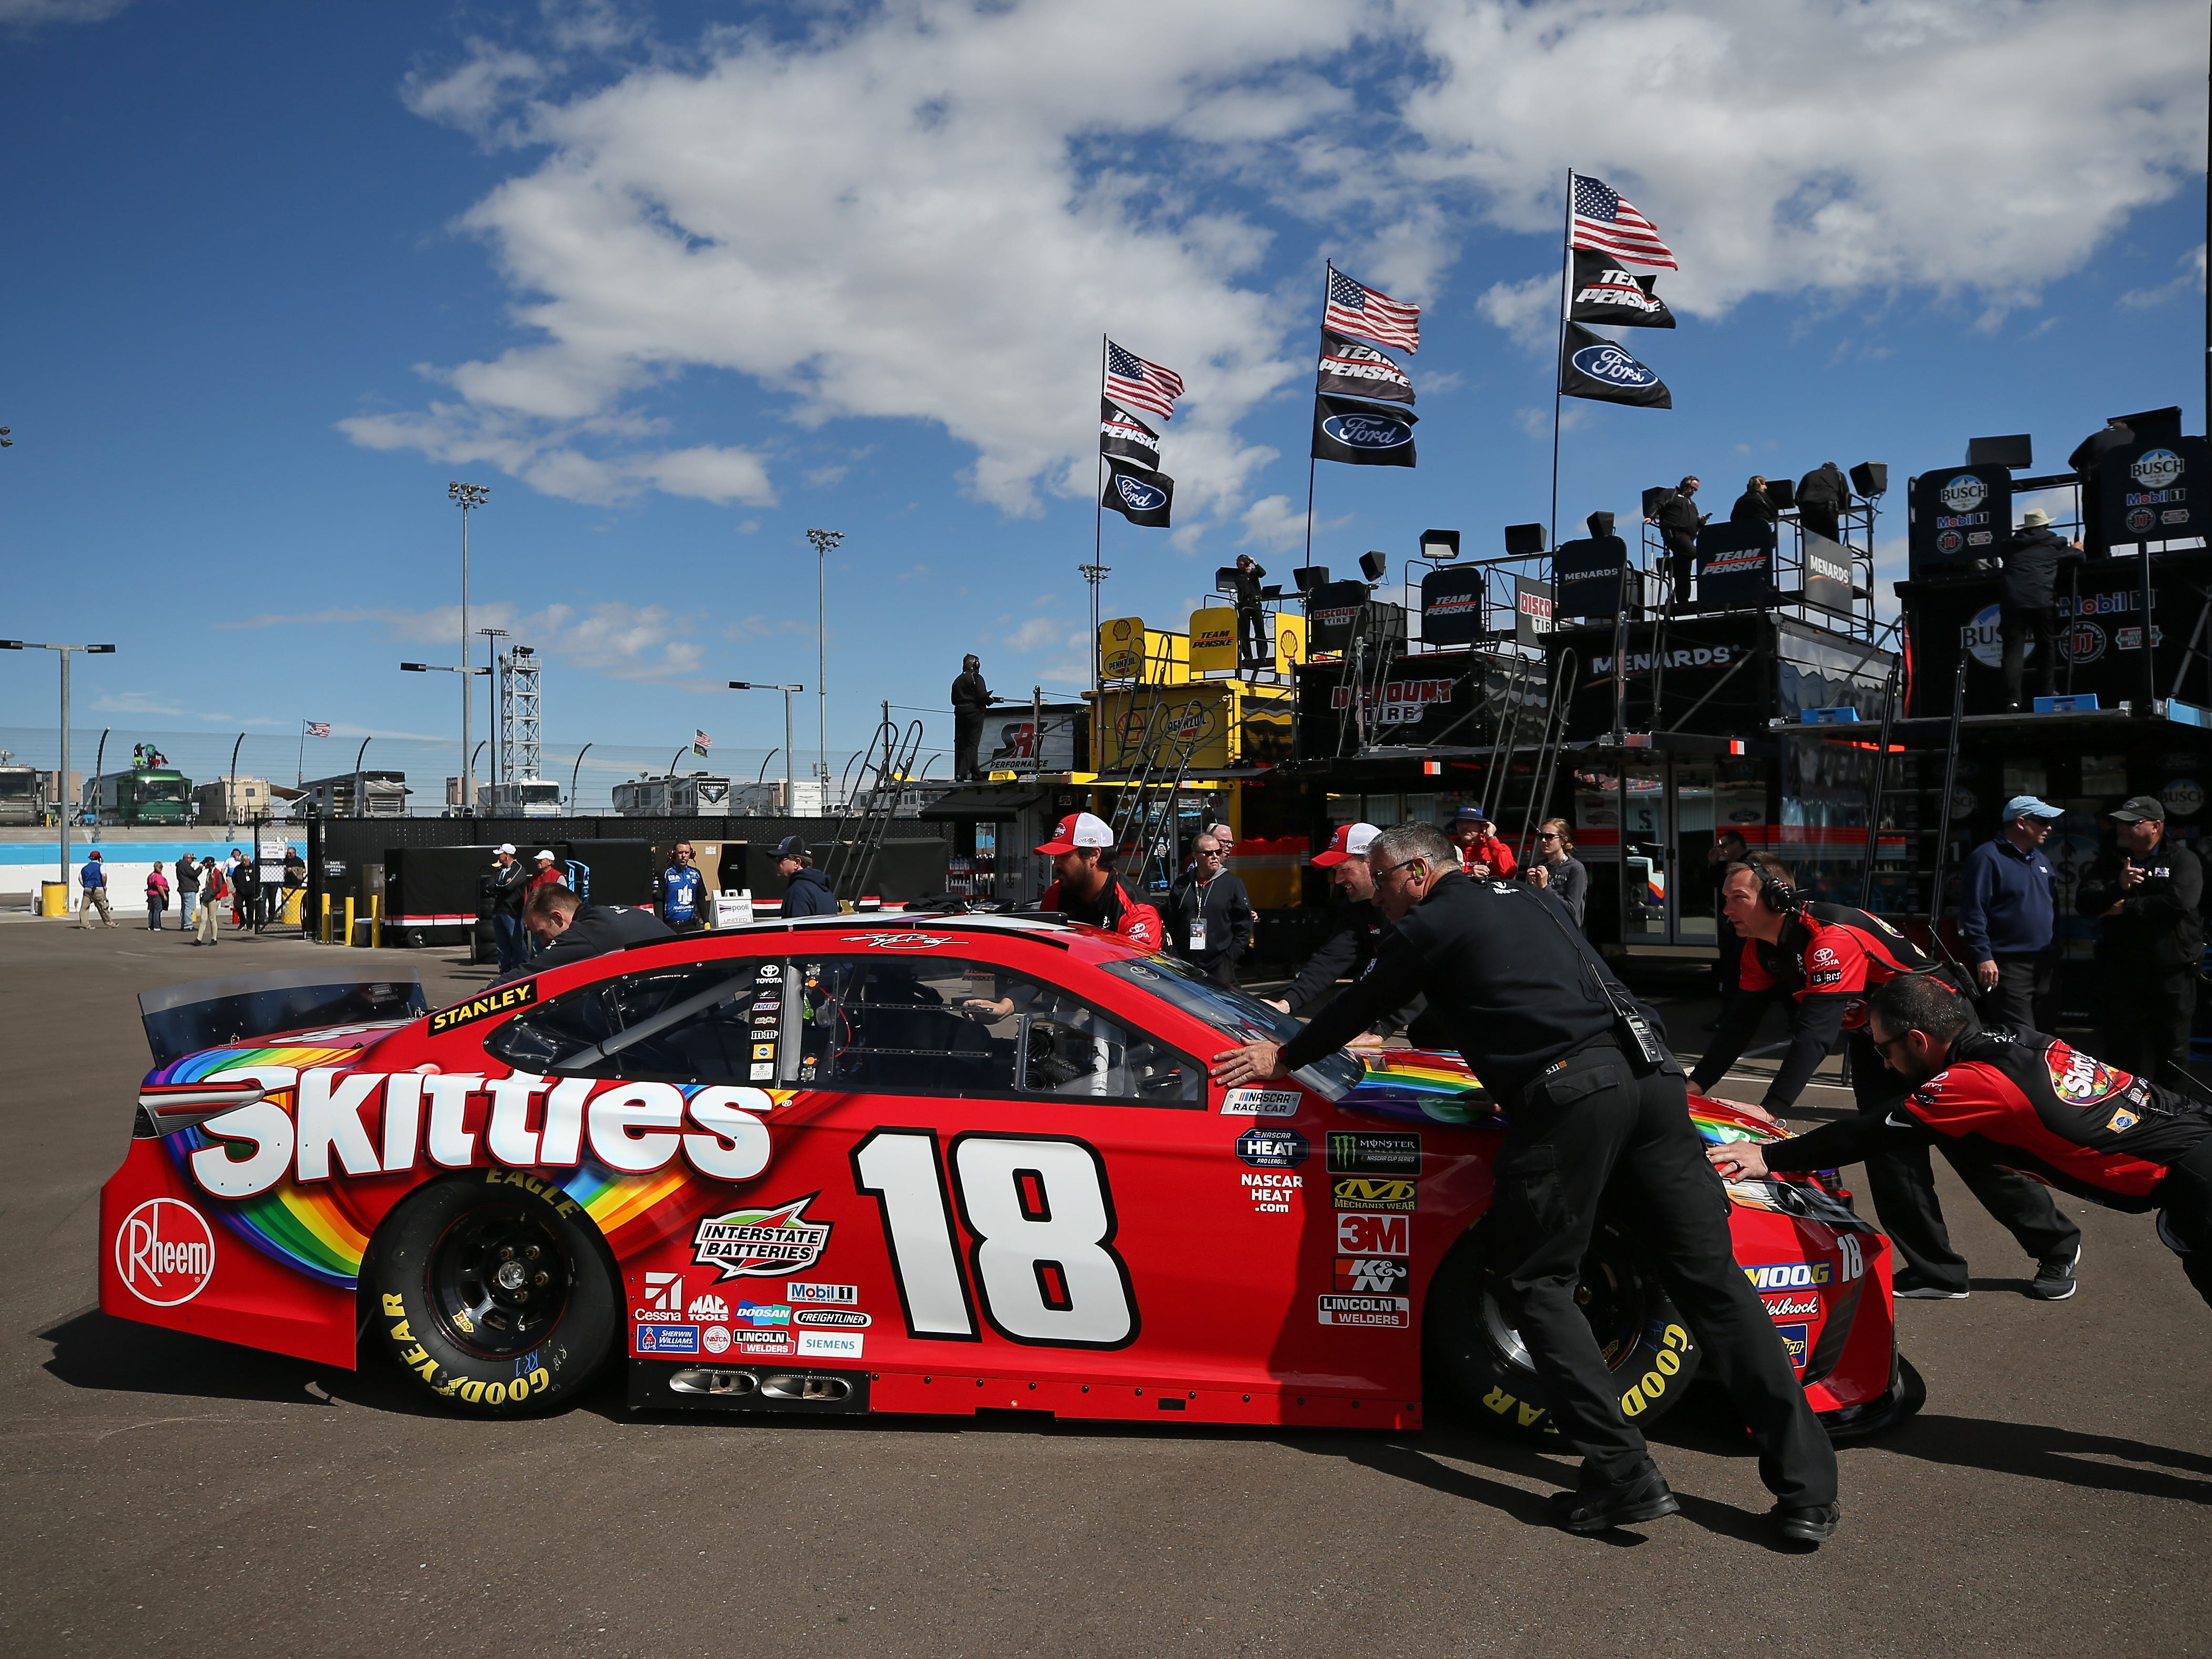 AVONDALE, AZ - MARCH 08:  Kyle Busch, driver of the #18 Skittles Toyota, has his car pushed throught the garage during practice for the Monster Energy NASCAR Cup Series TicketGuardian 500 at ISM Raceway on March 8, 2019 in Avondale, Arizona.